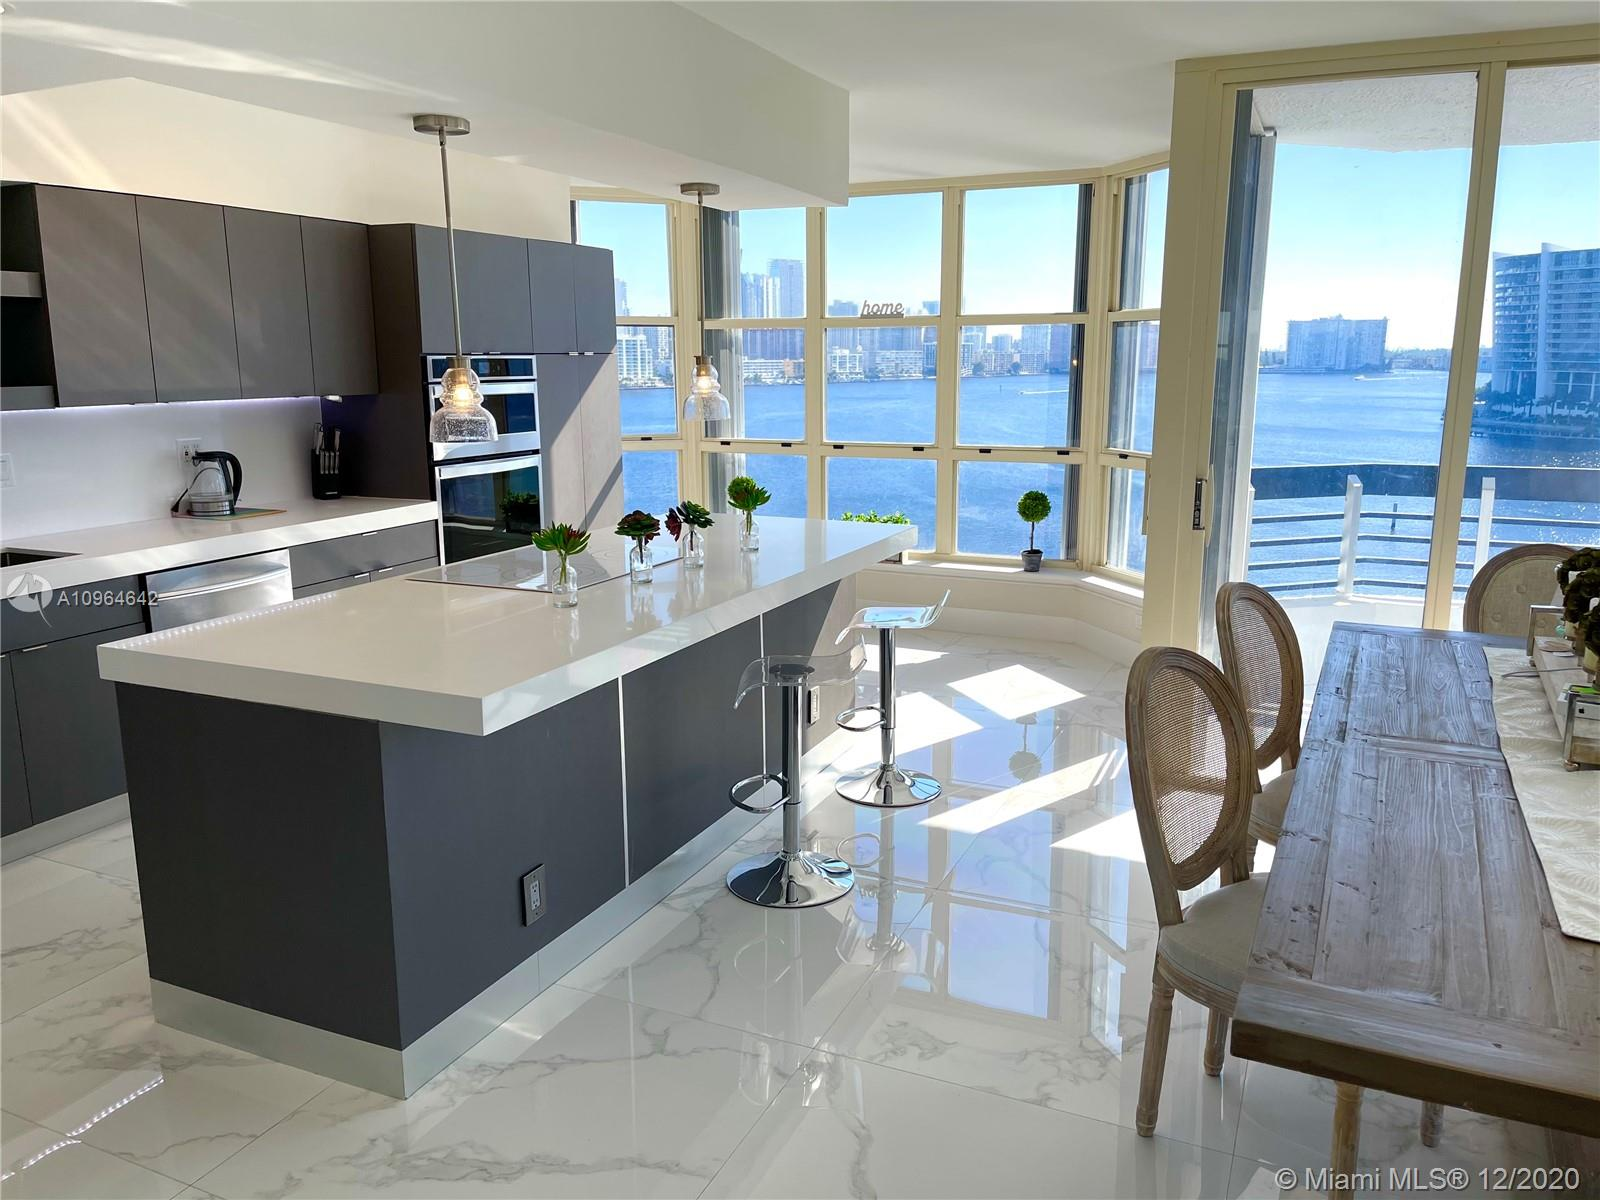 3600 Mystic Pointe Dr Unit 1001, Aventura, Florida 33180